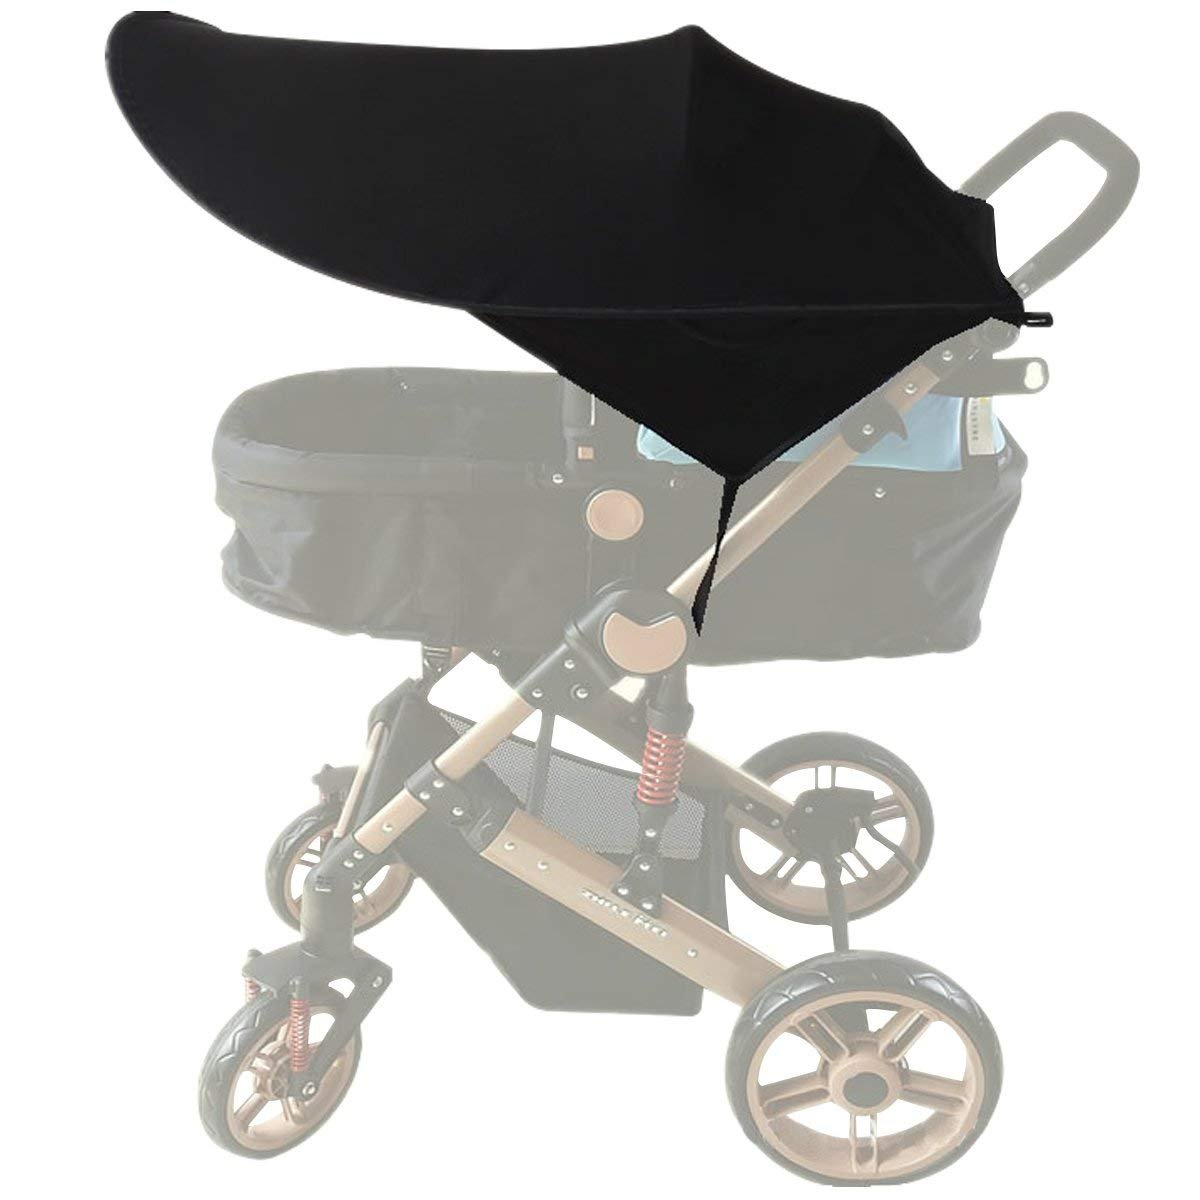 ZLMI Baby Stroller Sun Cover,Baby Carriage Awning,Infant Pushchair Sun Shade Baby Stroller Black Sun Shield Has Excellent UV Protection